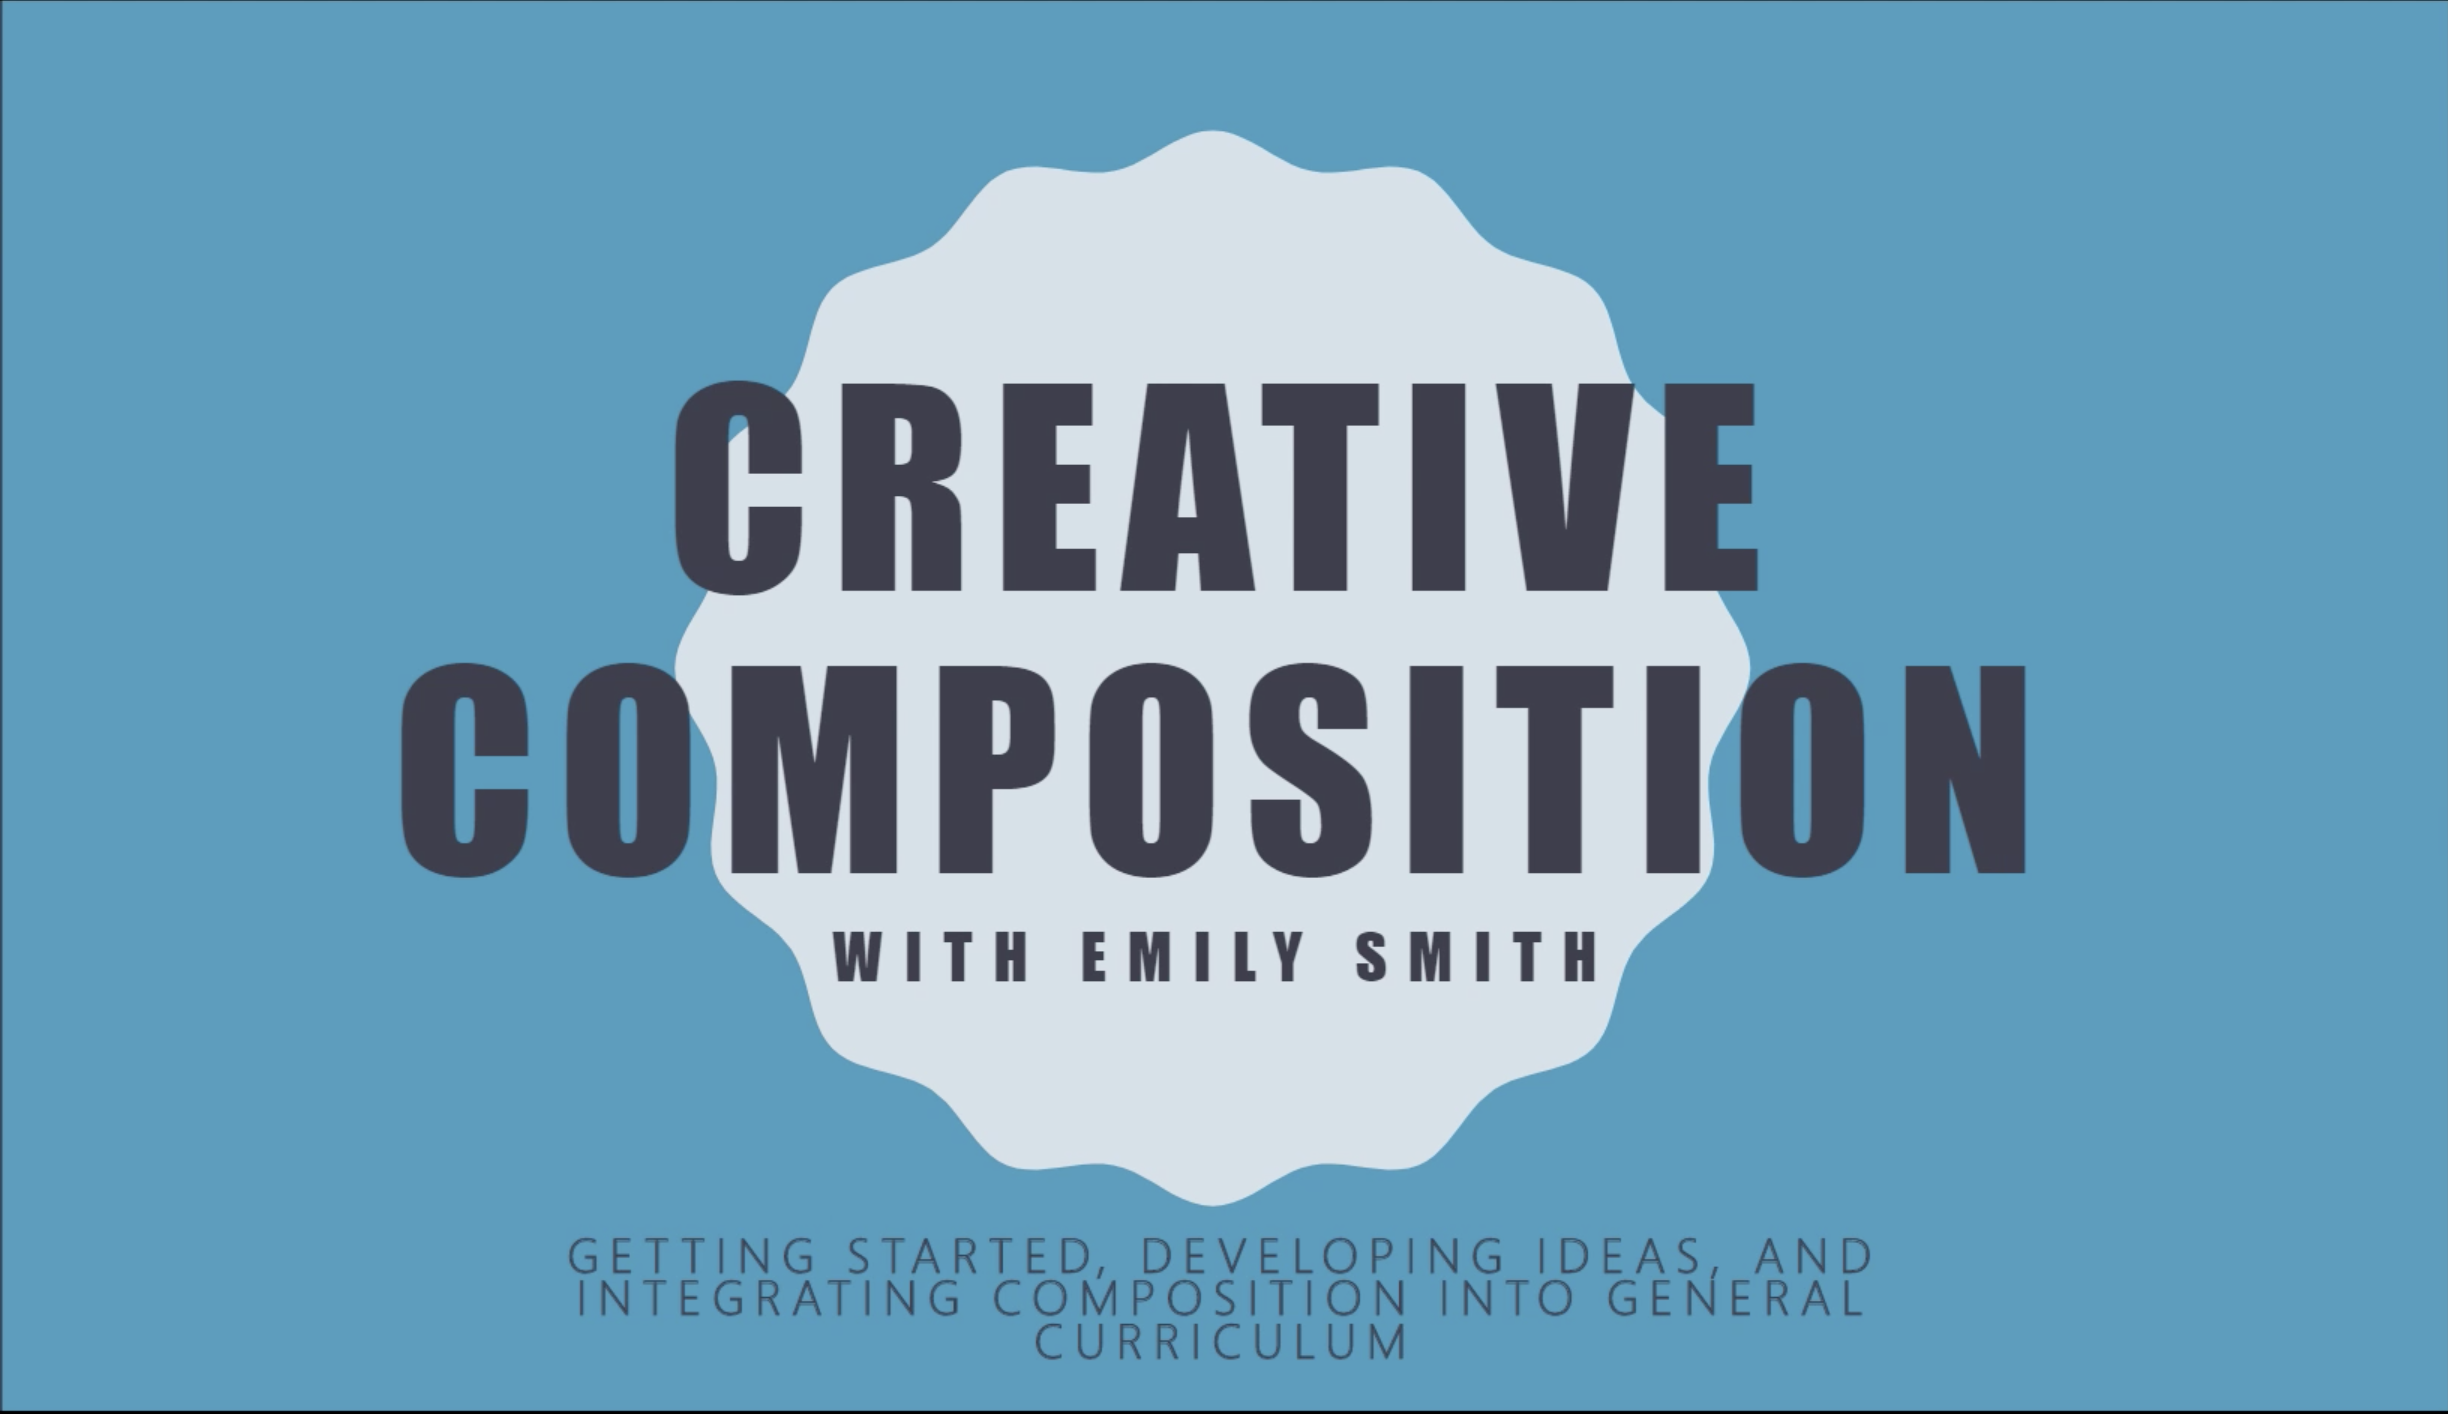 Webinar: Emily Smith On Collective Composition Part 3 – July 2018